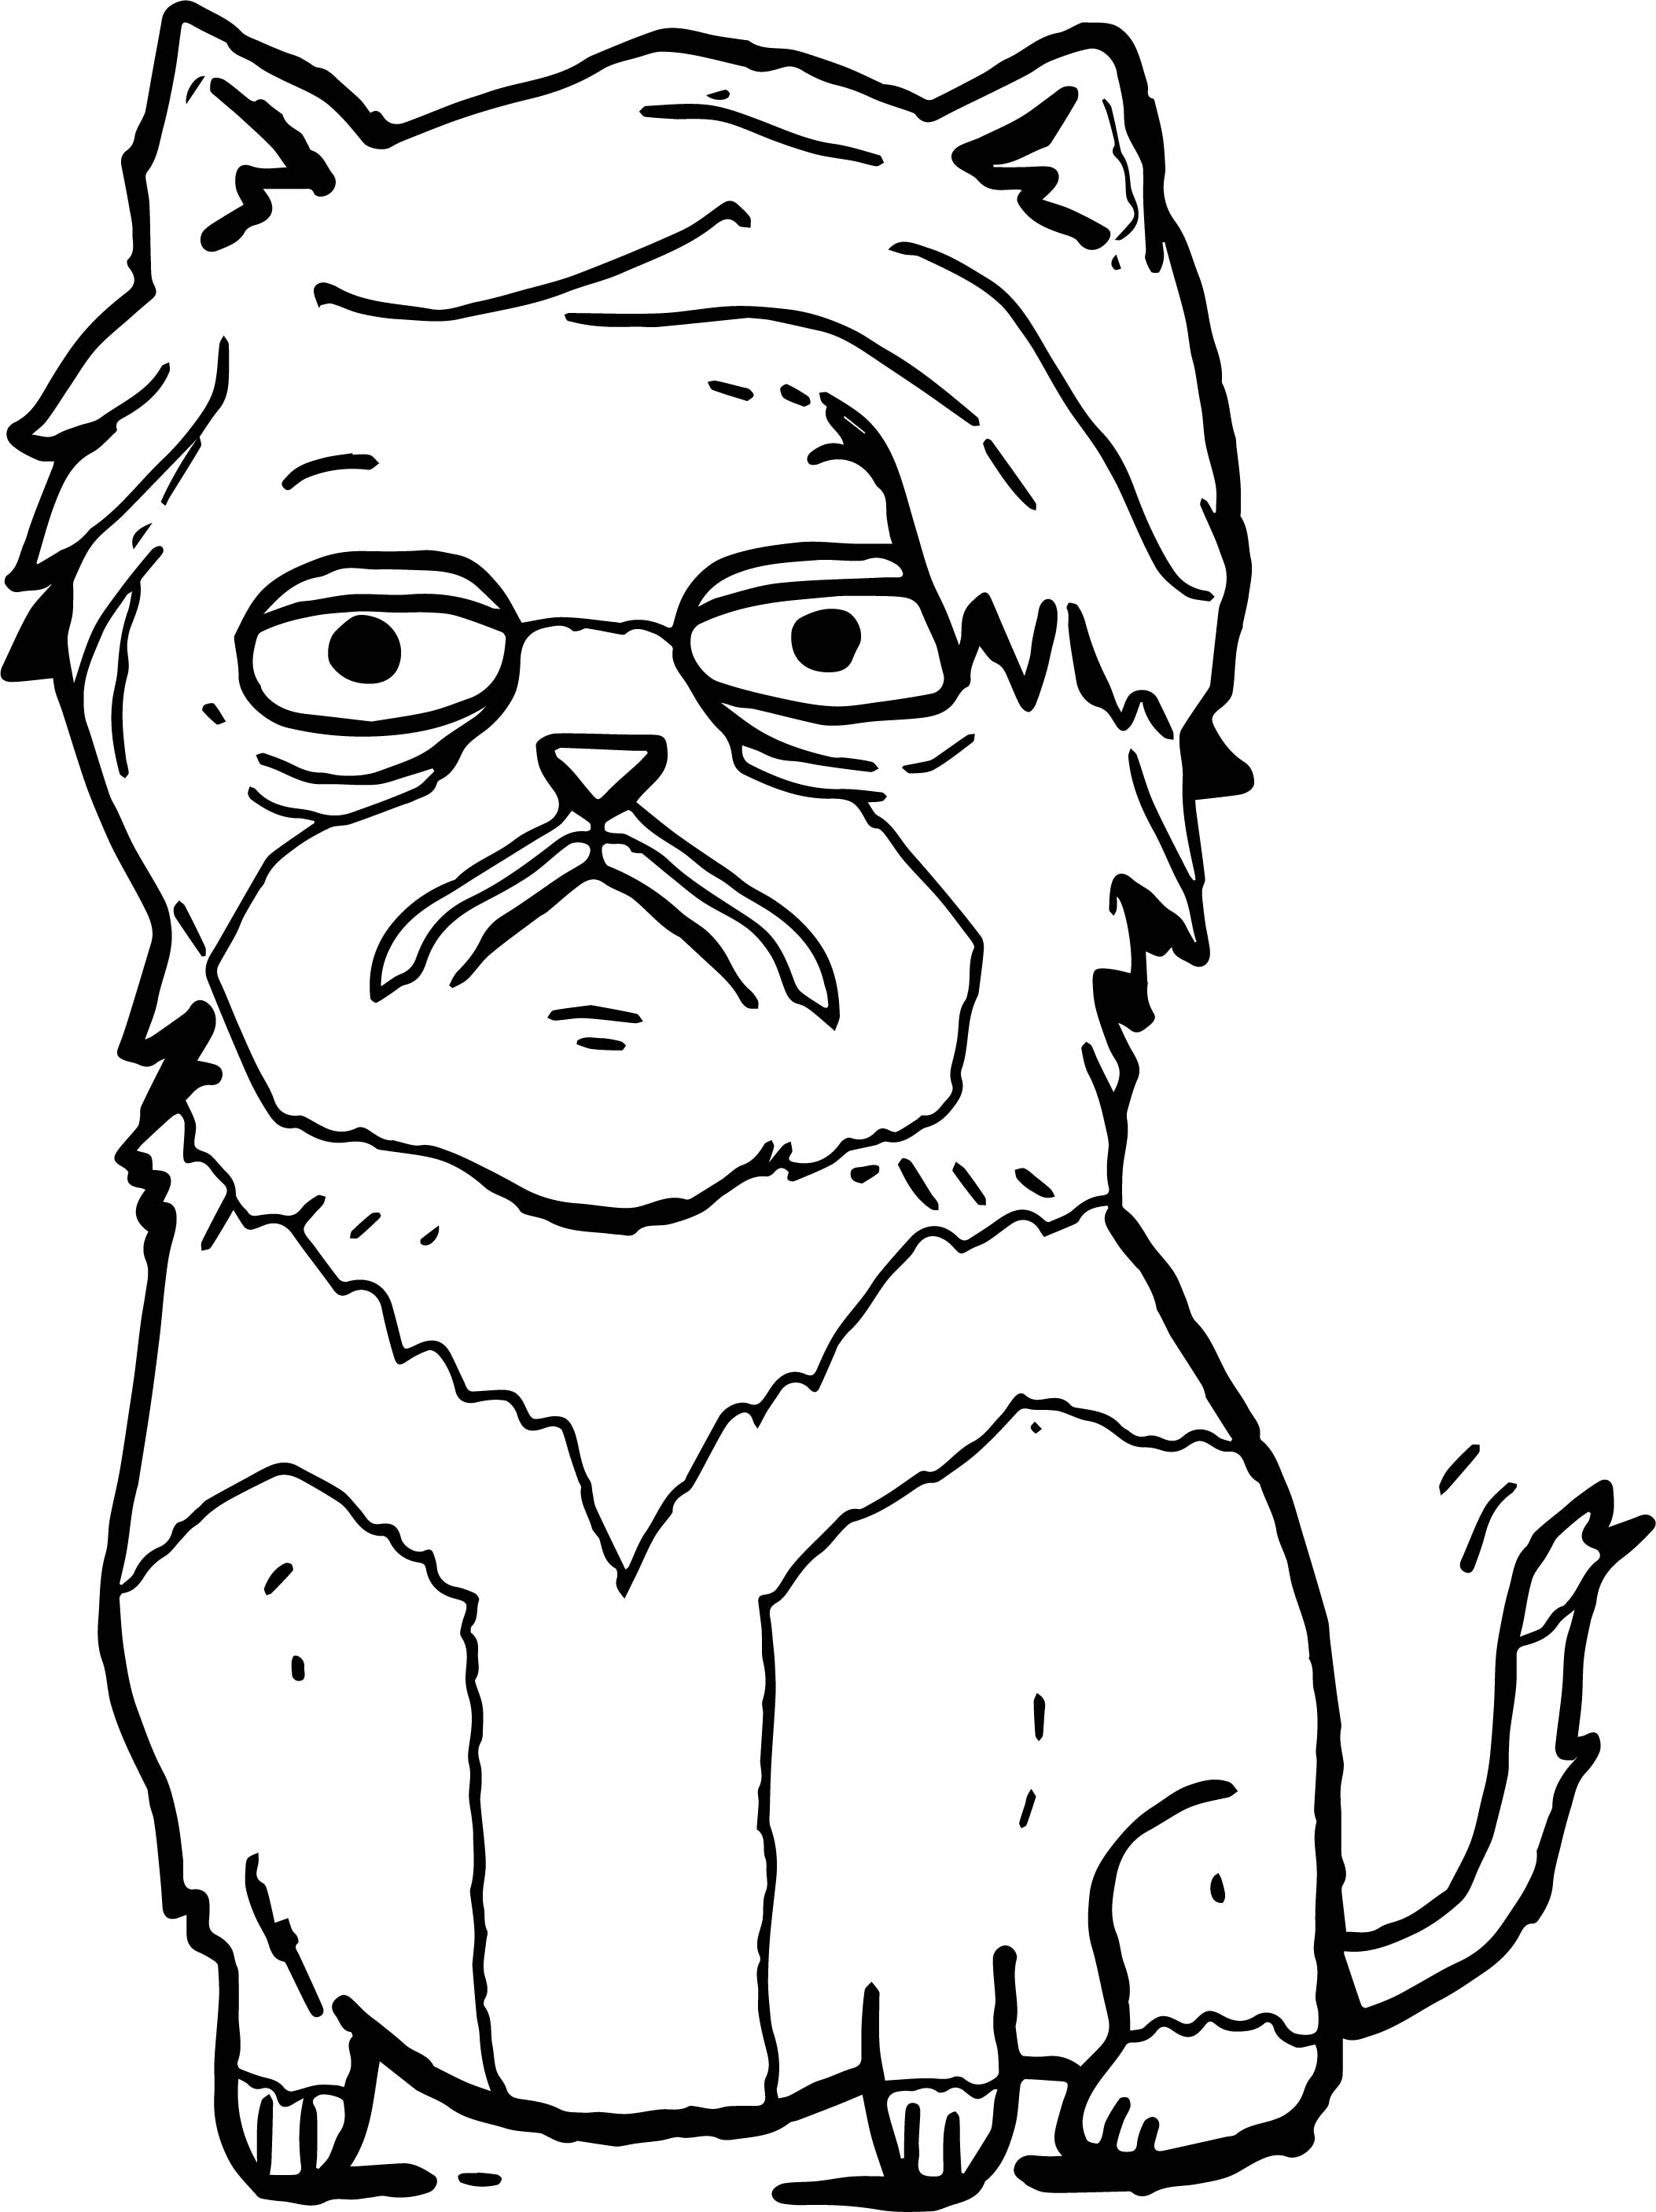 Old Big Cat Coloring Page